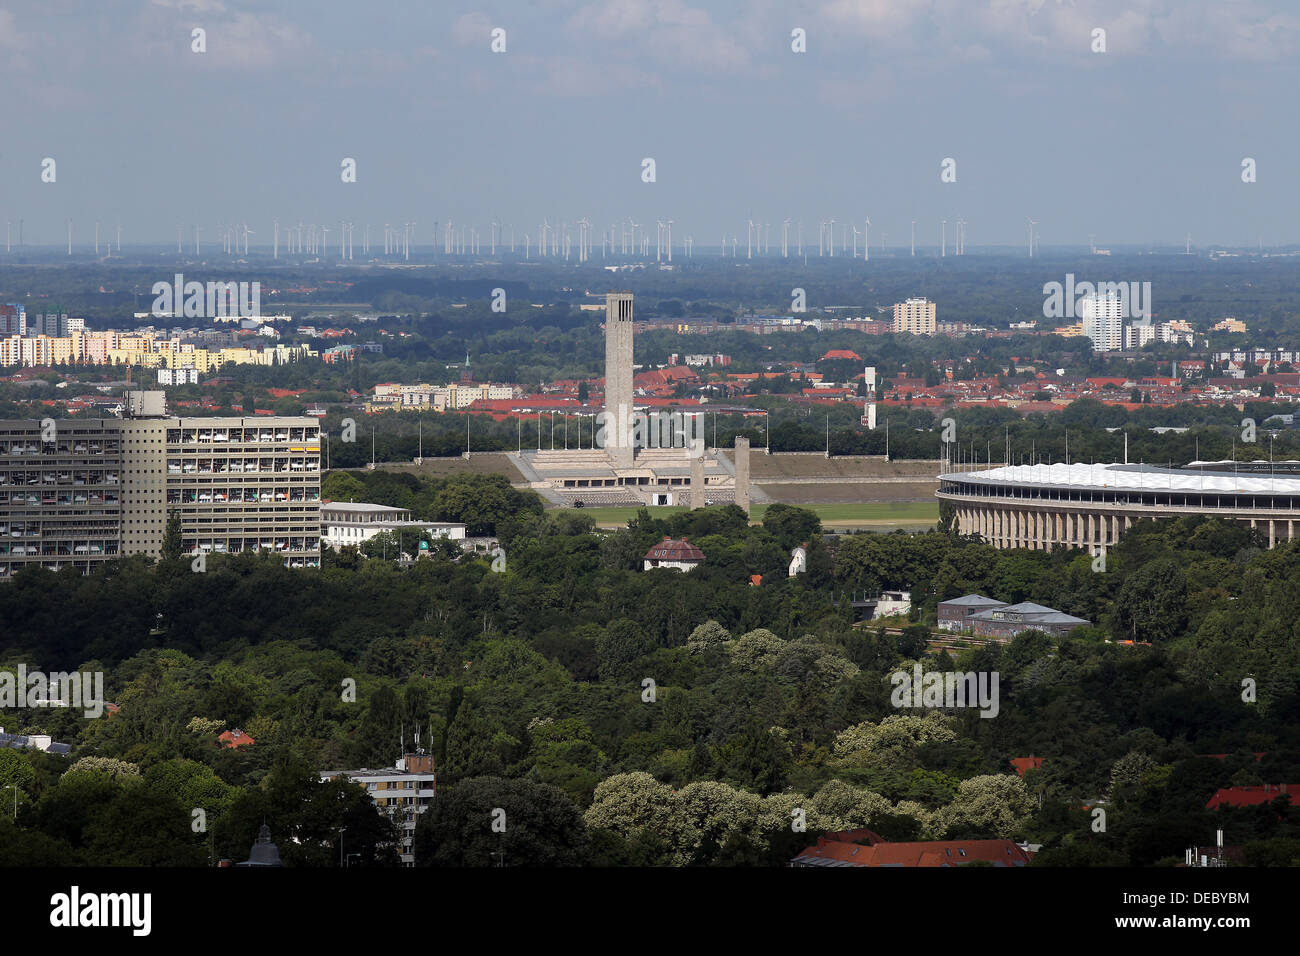 Berlin, Germany, May Field of sight with bell tower - Stock Image